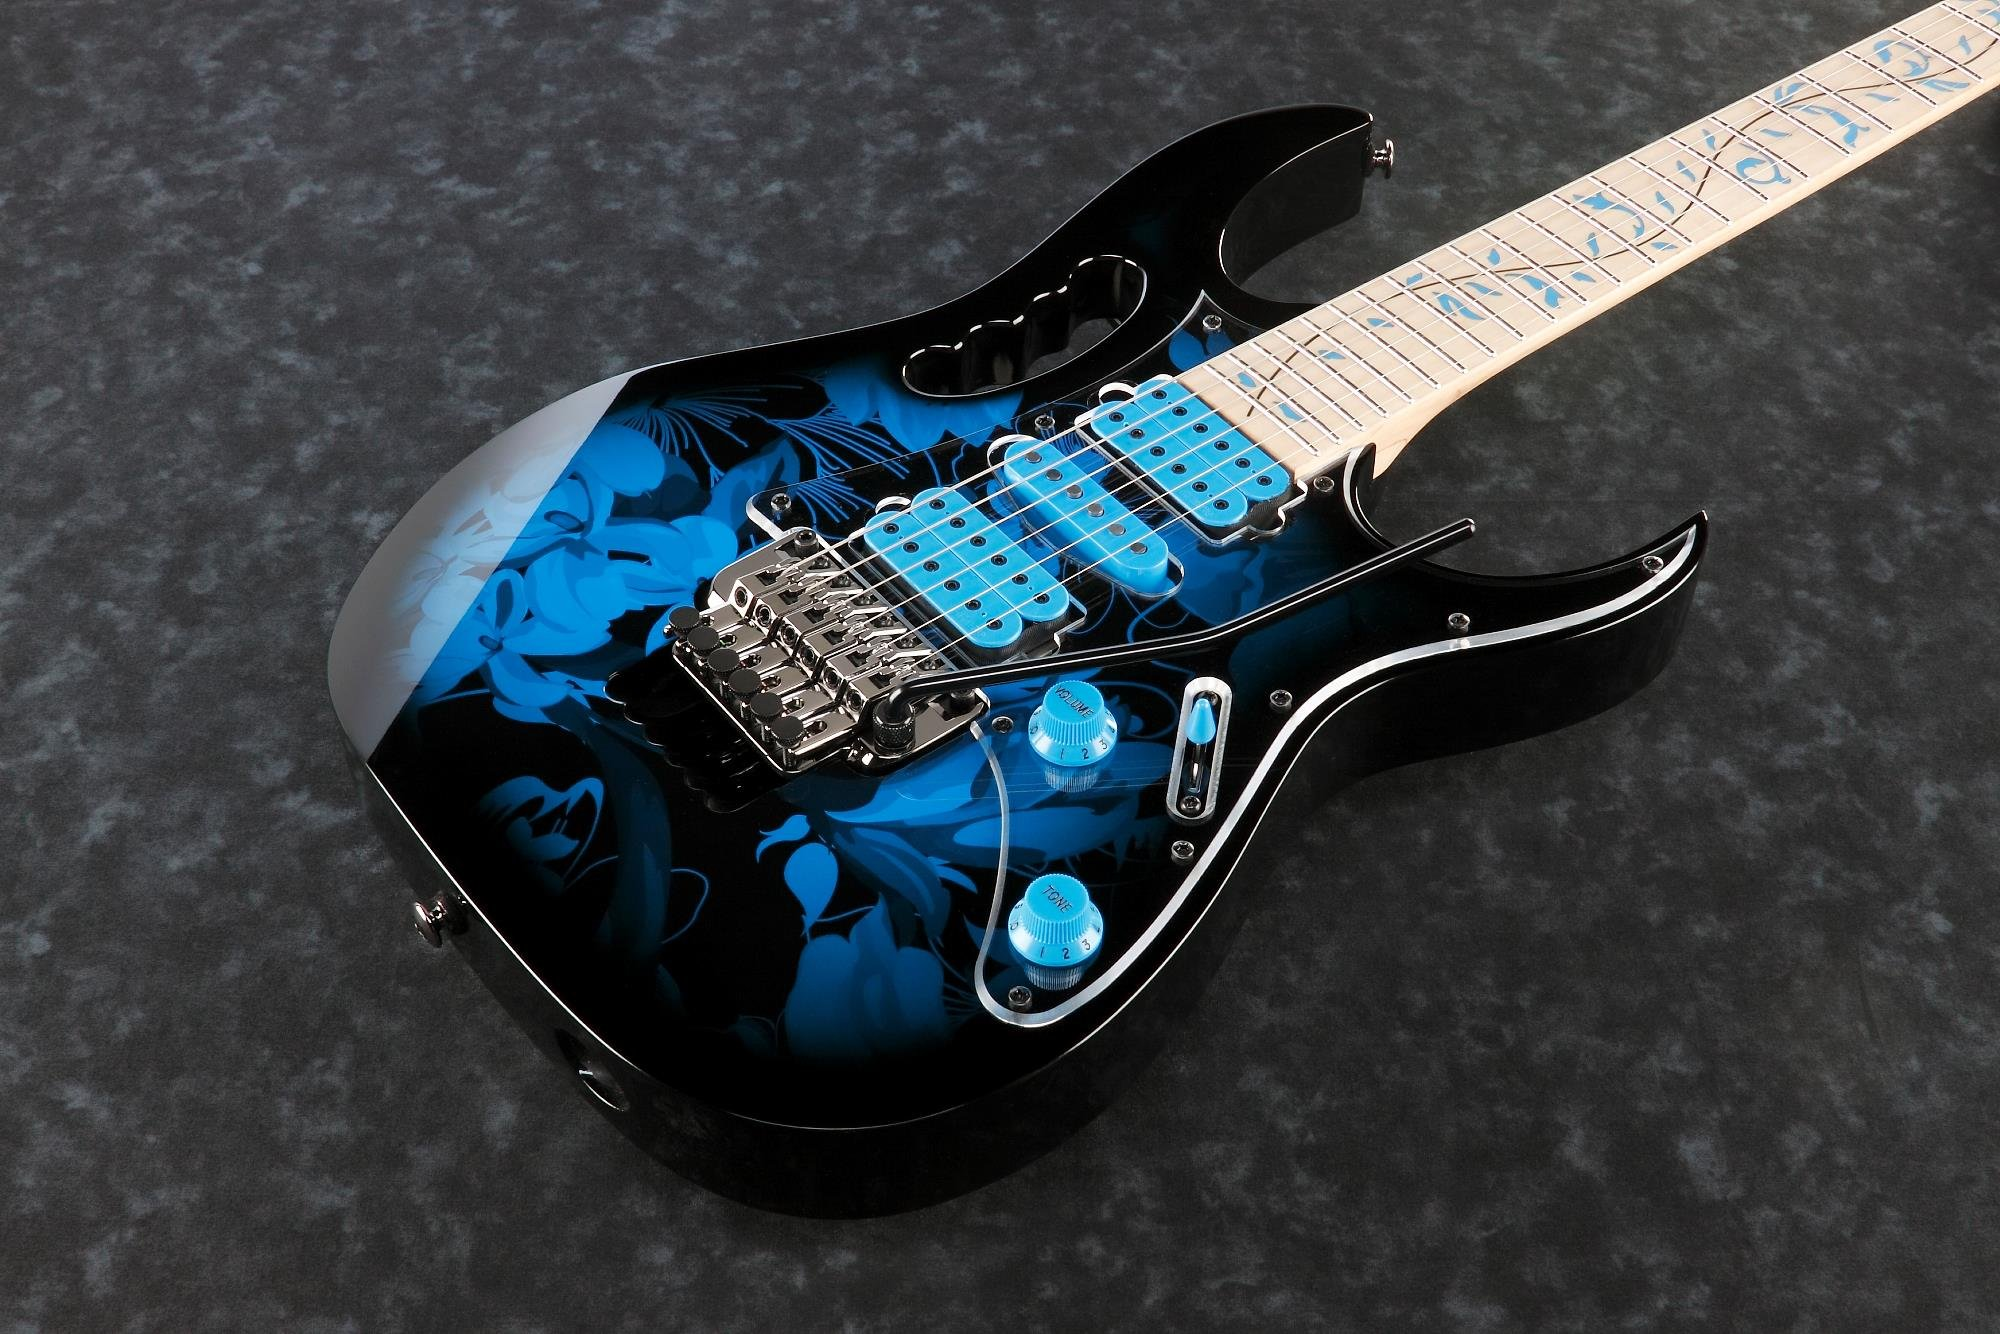 Ibanez JEM77PBFP Steve Vai Signature 6str Electric Guitar w/Bag - Blue Floral Pattern